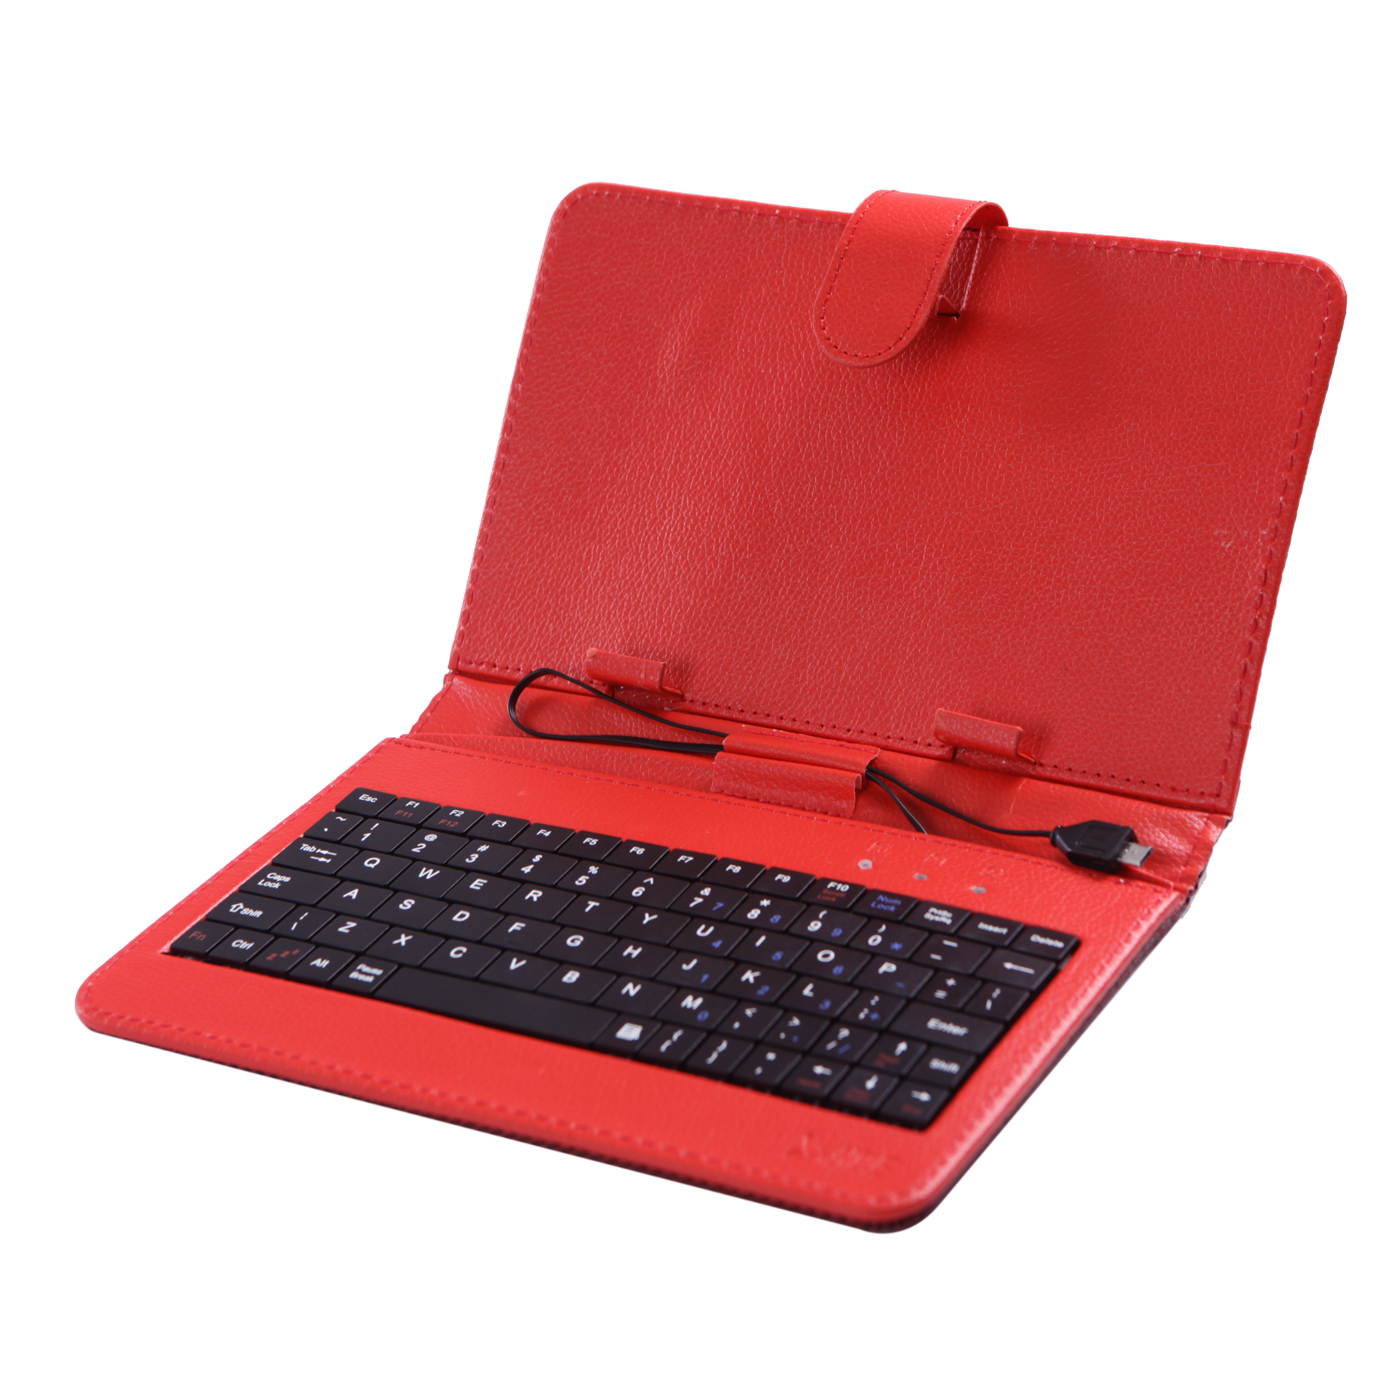 "HDE Diamond Stitch Hard Leather Folding Folio Case Cover with Micro USB Keyboard for 7"" Tablet (White)"